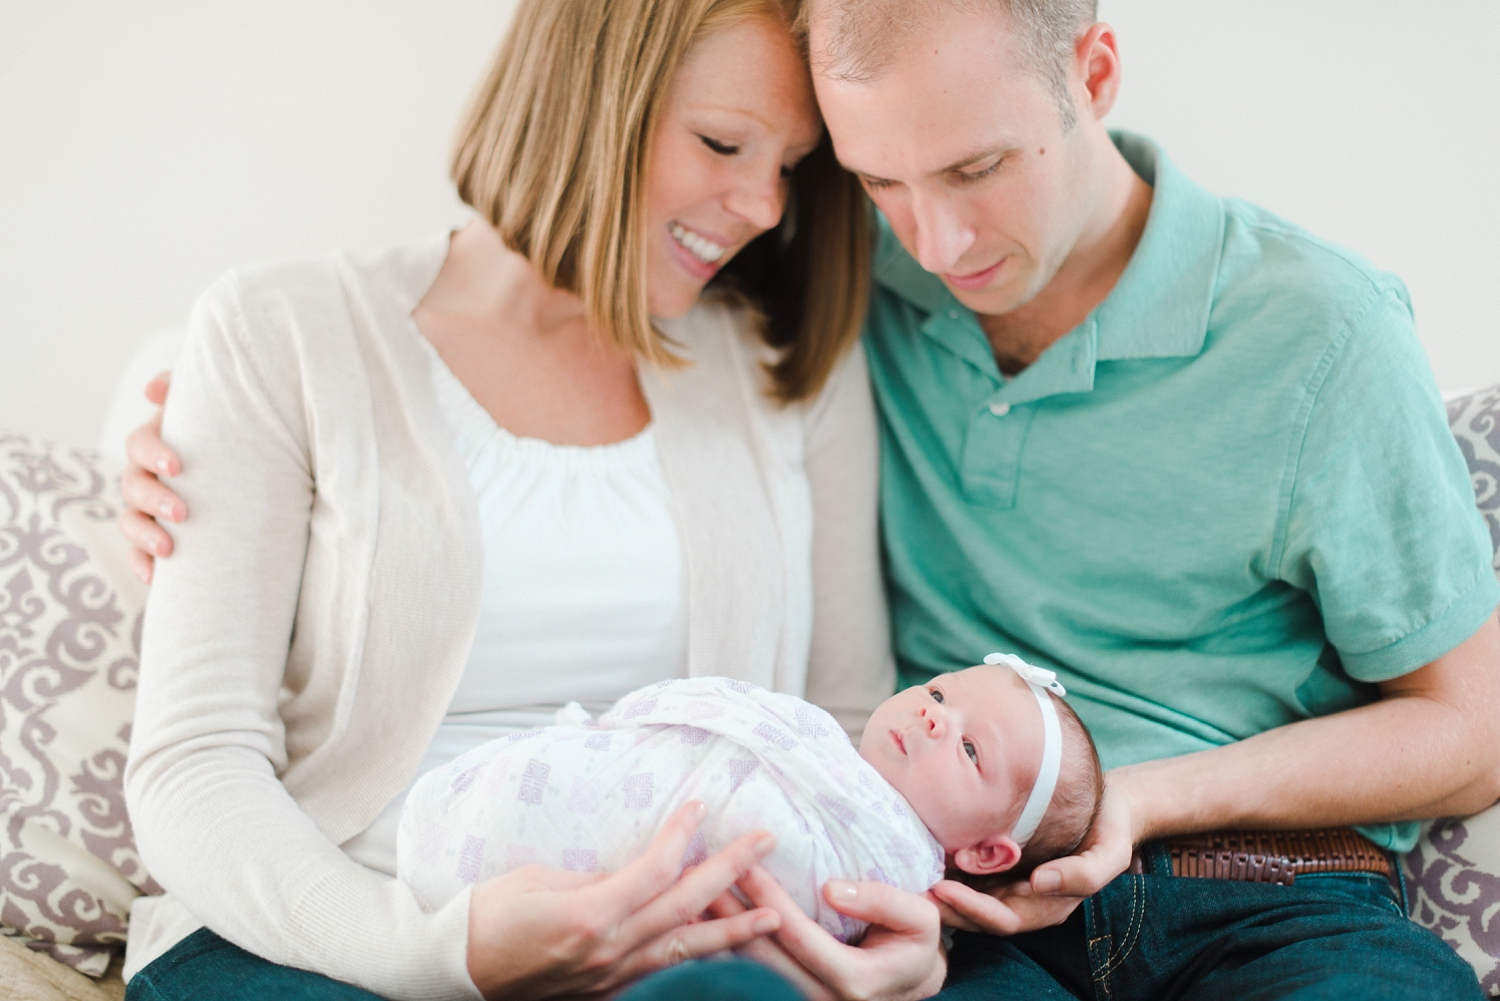 richmond_family_newborn photographer_0032.jpg